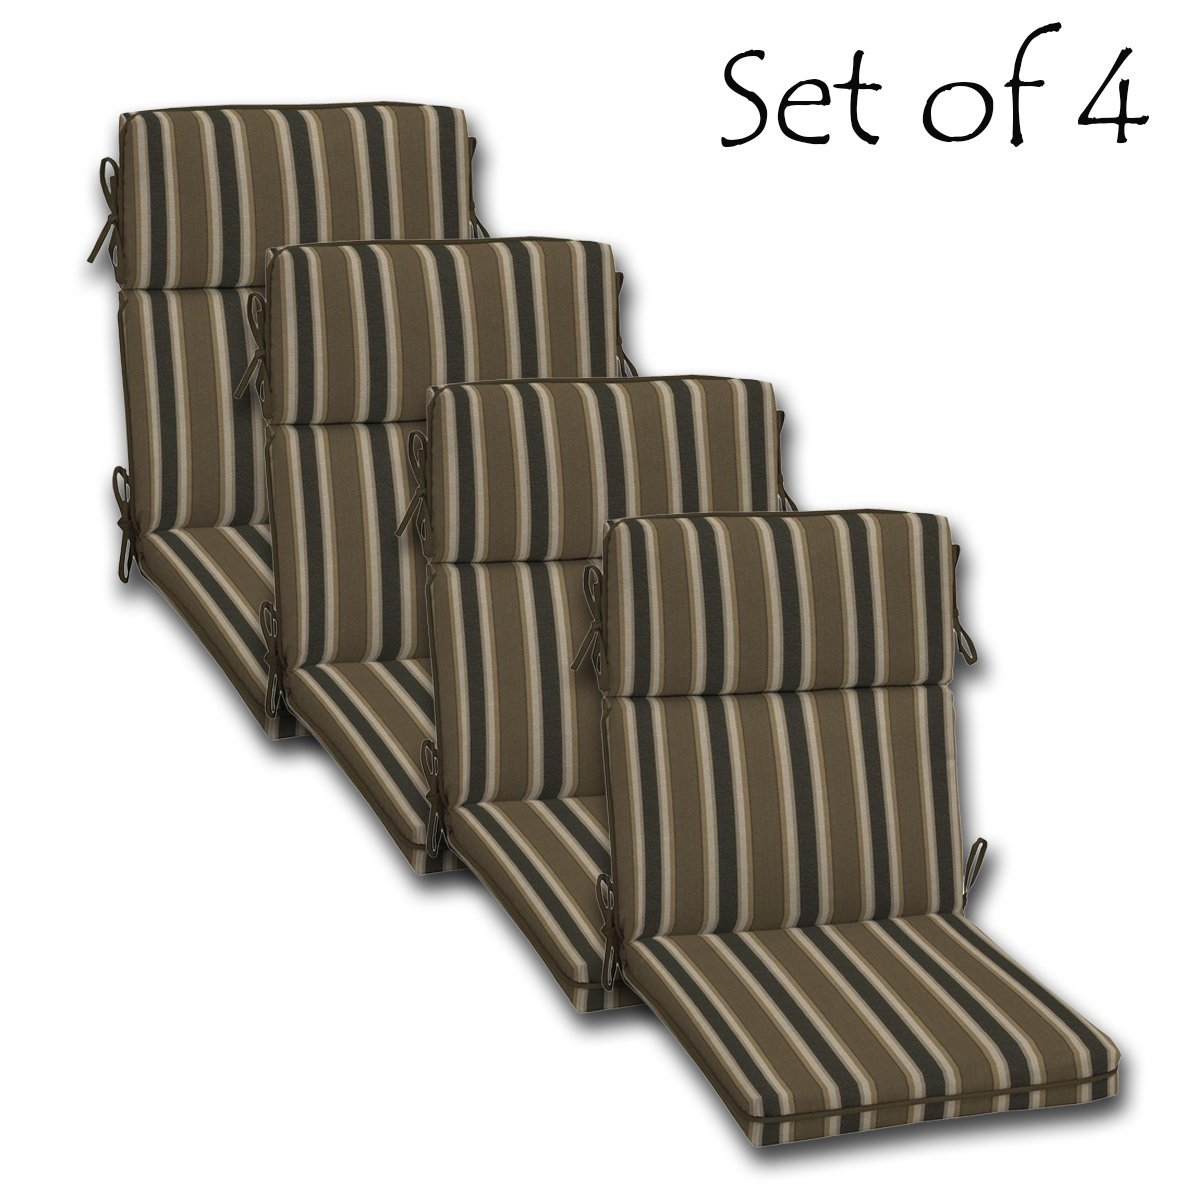 """SET OF 4 Outdoor High Back Chair Cushion, Single Welt 44"""" x 21"""" x 4.5"""" (Seat: 20""""D x 21""""W x 4.5""""T; Back: 24""""D x 21""""W x 4.5"""" T) Polyester fabric Rea Stripe by Comfort Classics Inc."""